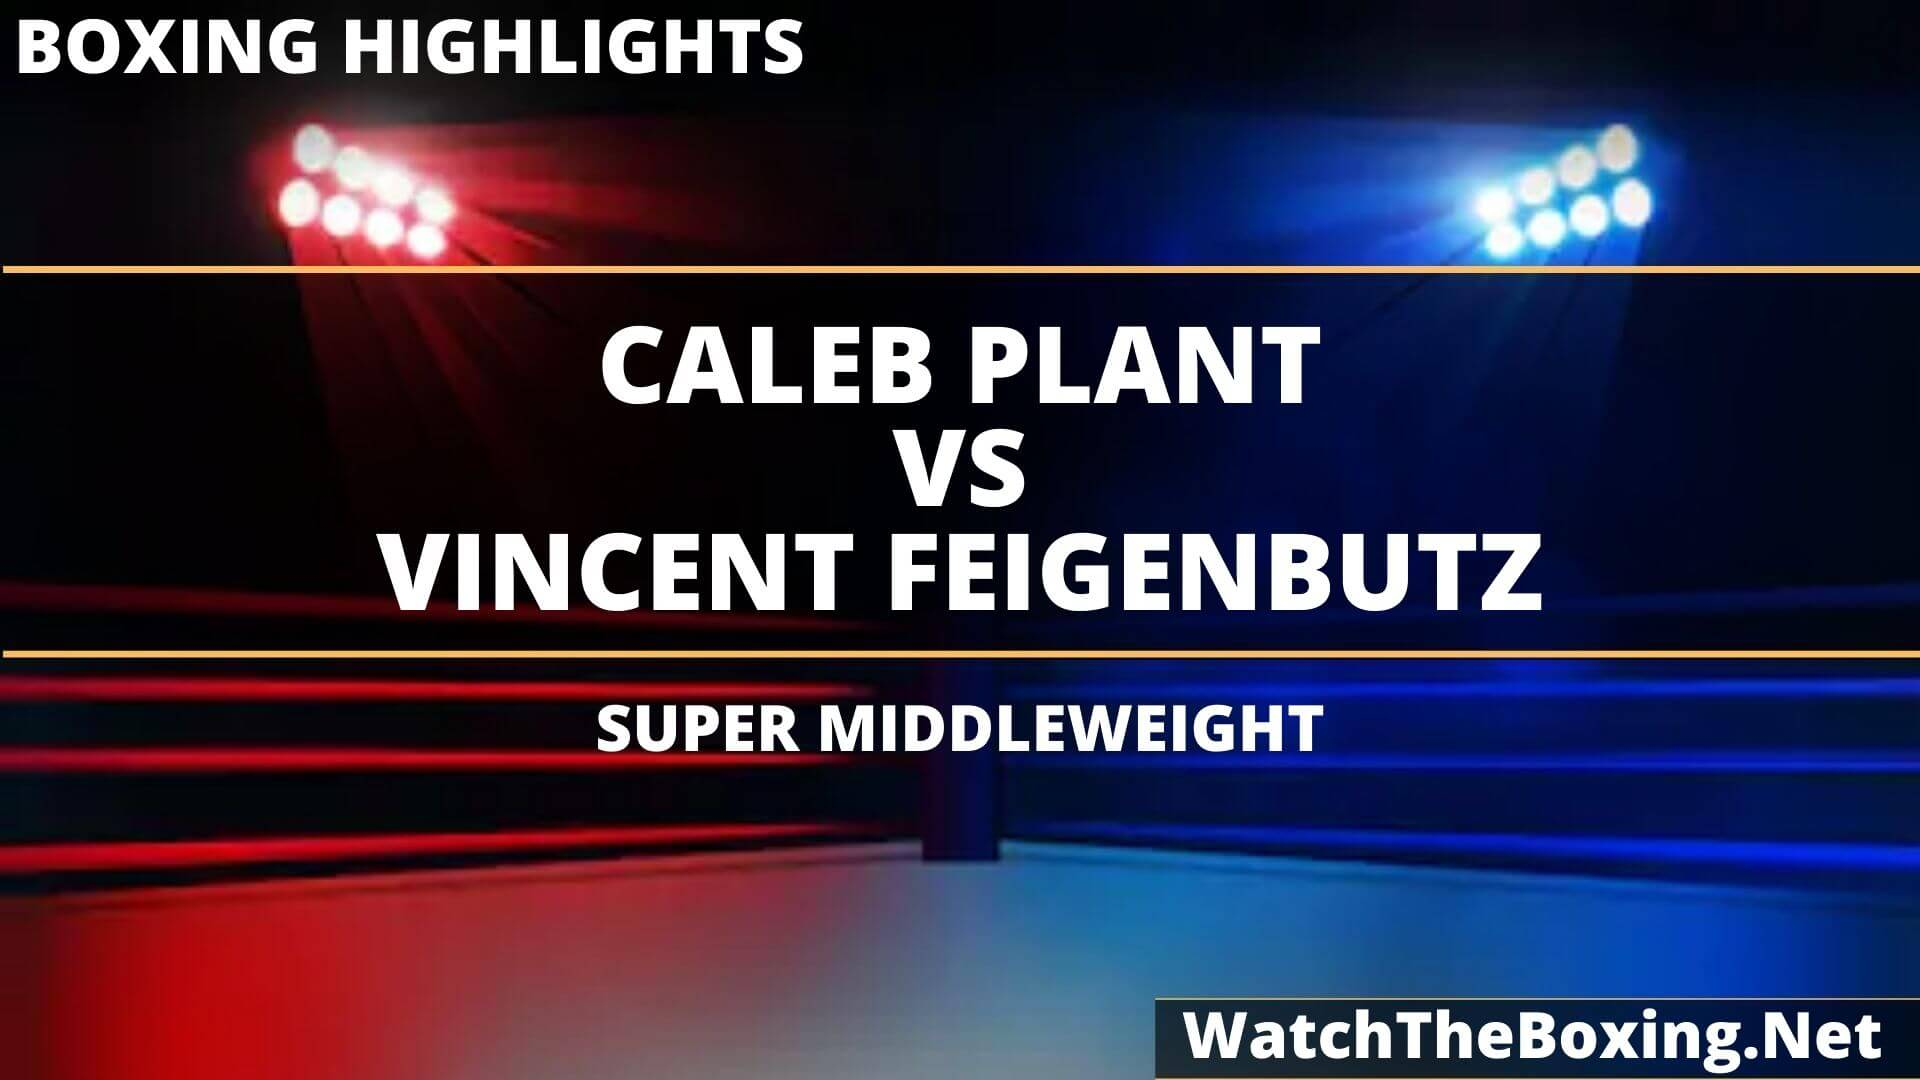 Caleb Plant Vs Vincent Feigenbutz Highlights 2020